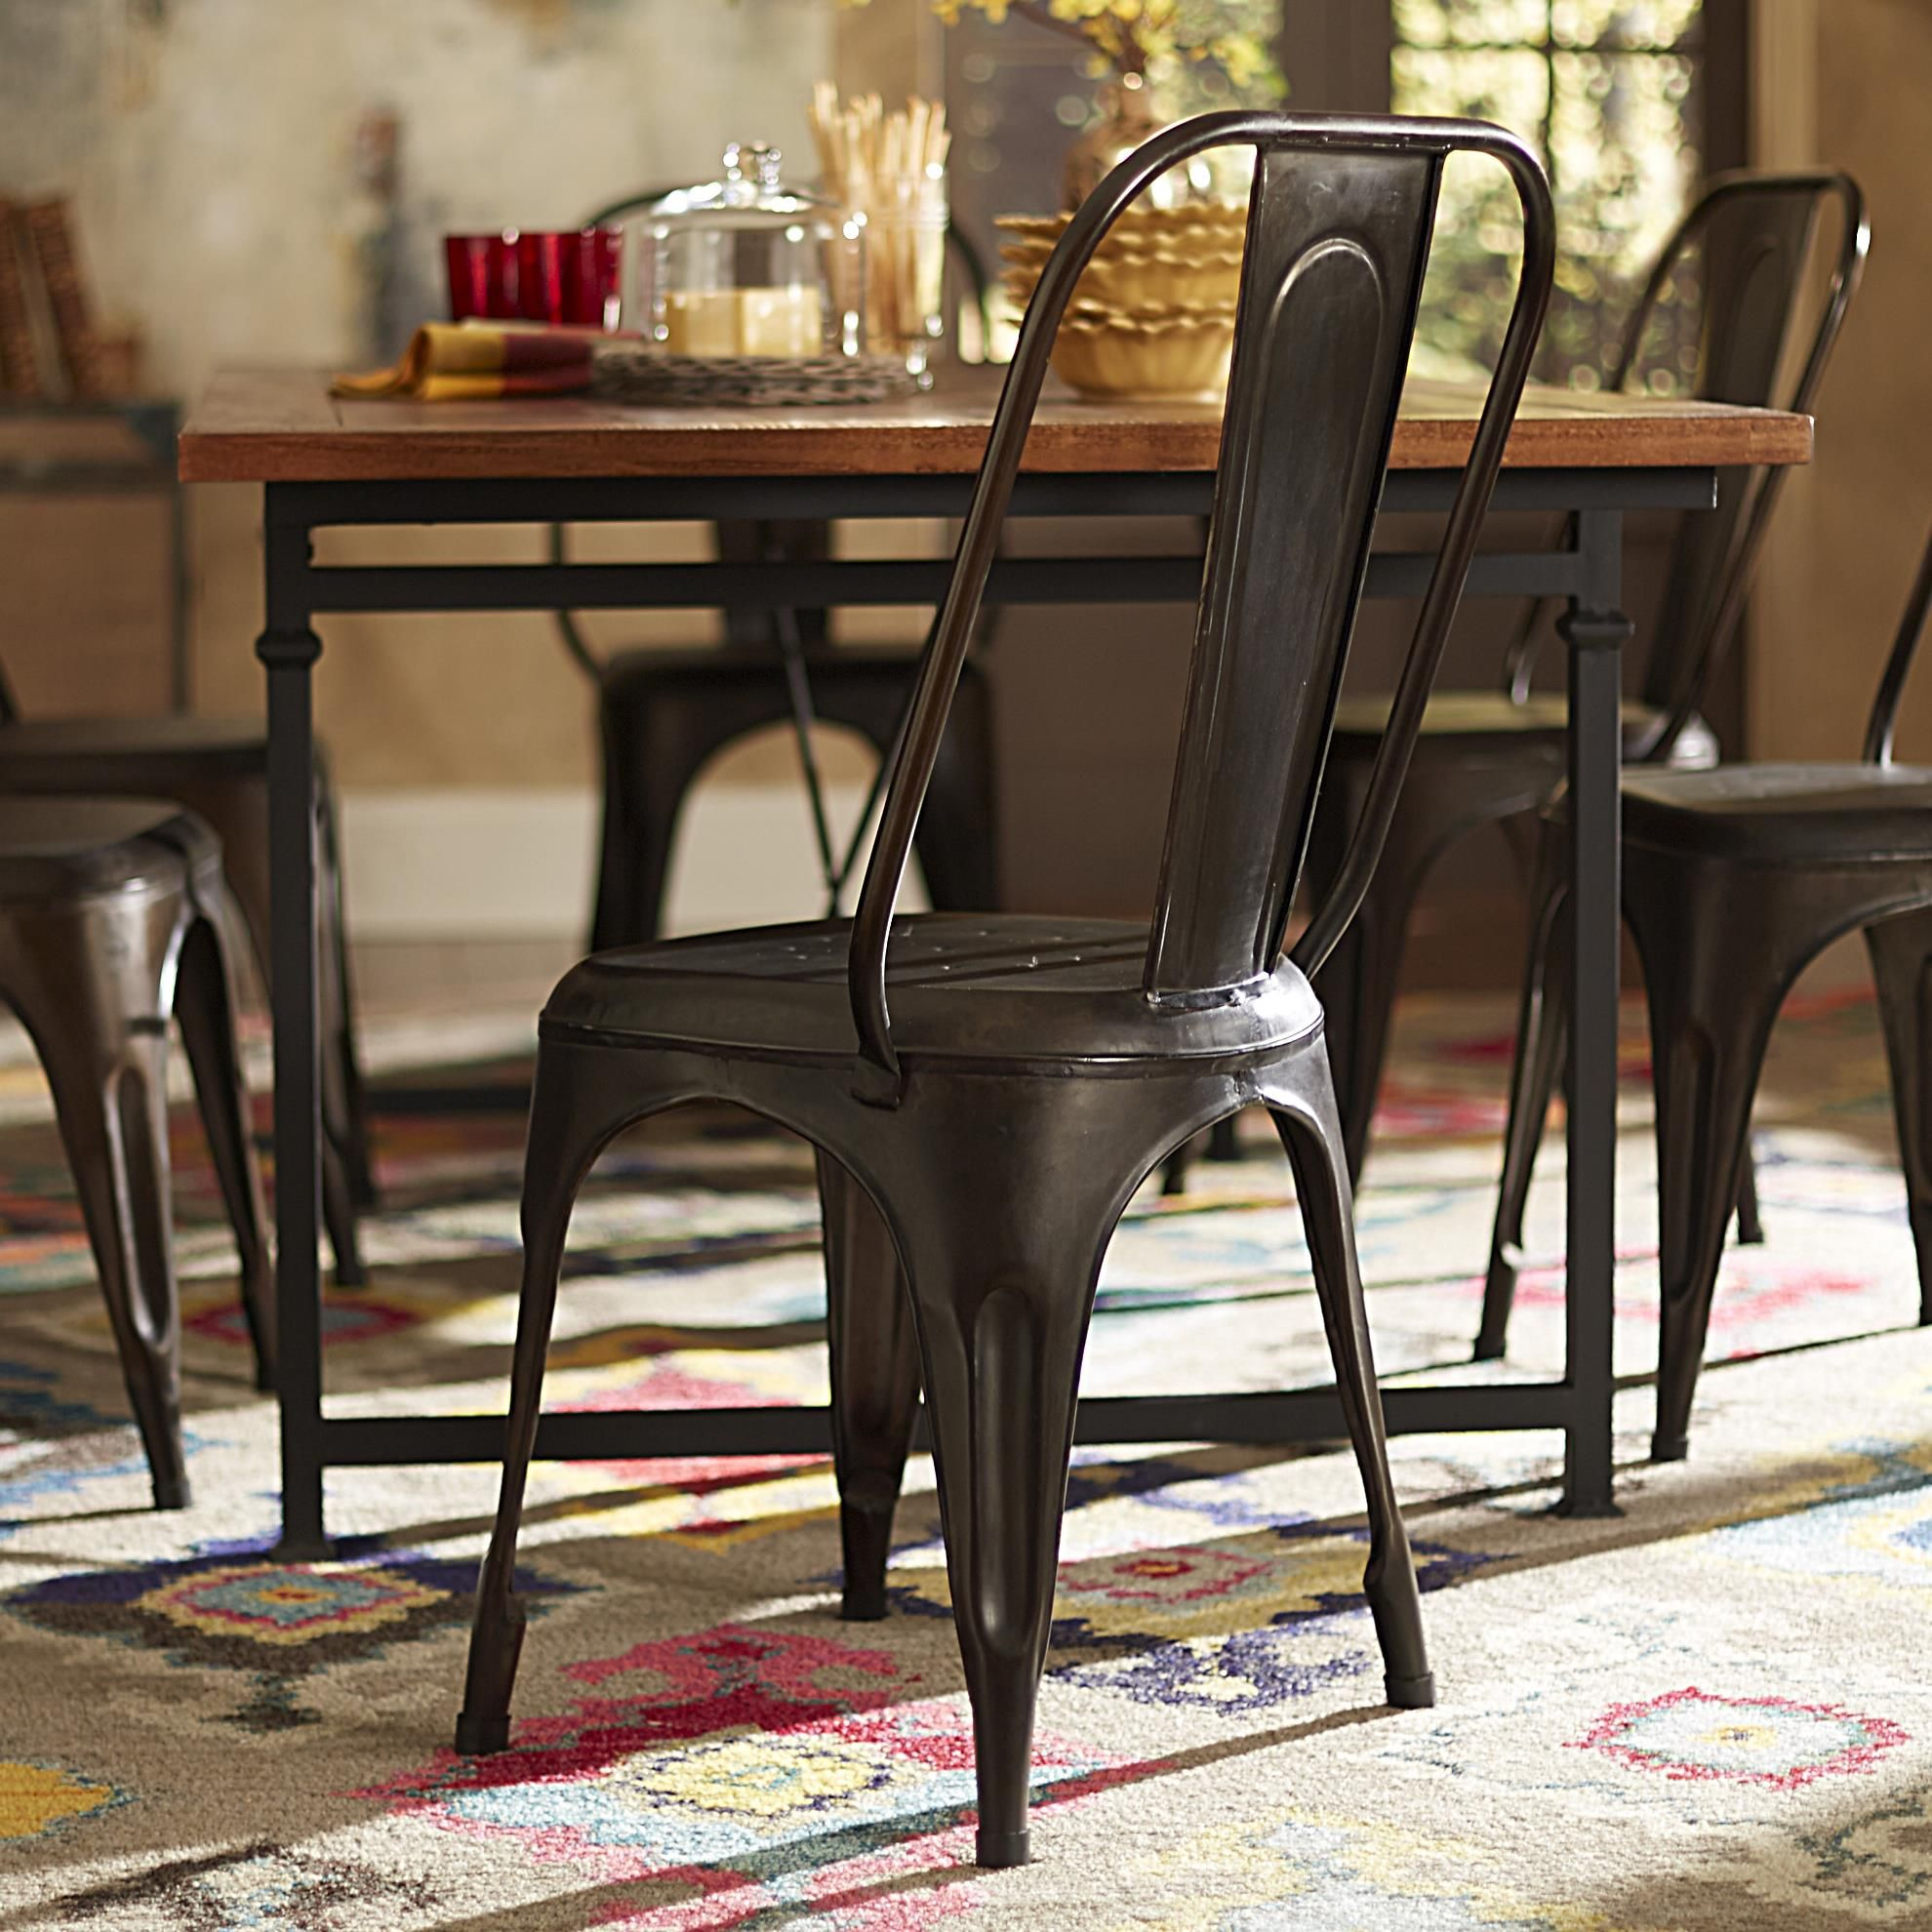 Add a pop of color to your modern dining room with these metal side chairs. Mix match these chairs to create a fun place in your home that shows off your on trend style. Use not only in your dining room but as an accent piece anywhere in your home.